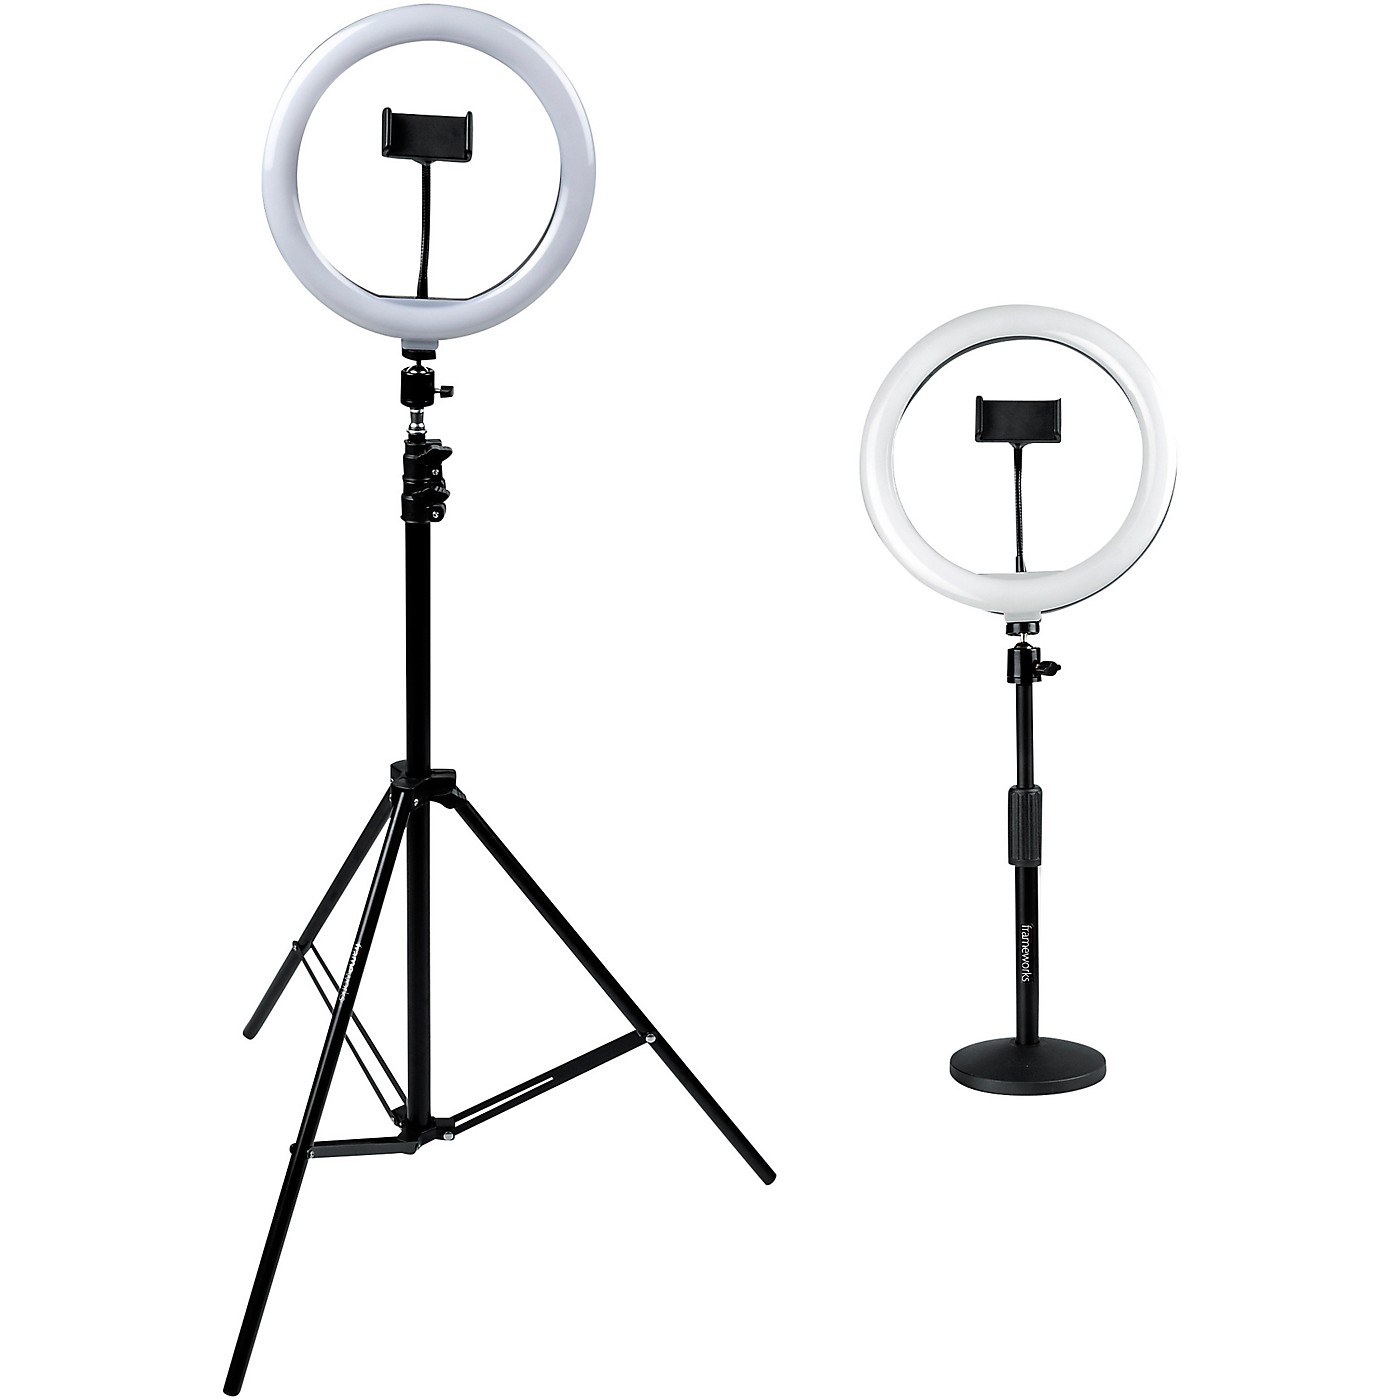 Gator Set of Two (2) Height-Adjustable Stands with Pivoting LED Ring Lights and Universal Phone Holders thumbnail